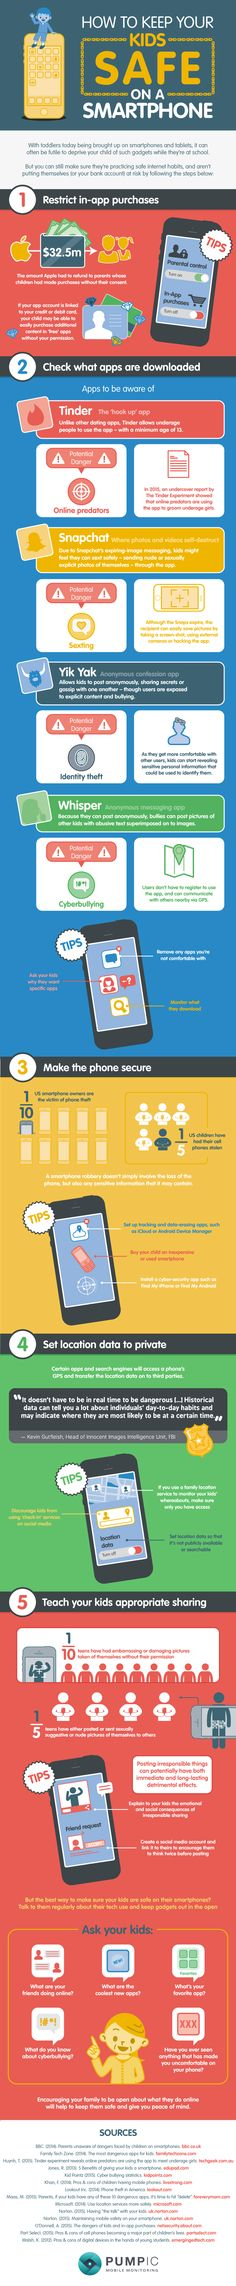 How to Keep Your Kids Safe Digitally [Infographic] - ChurchMag